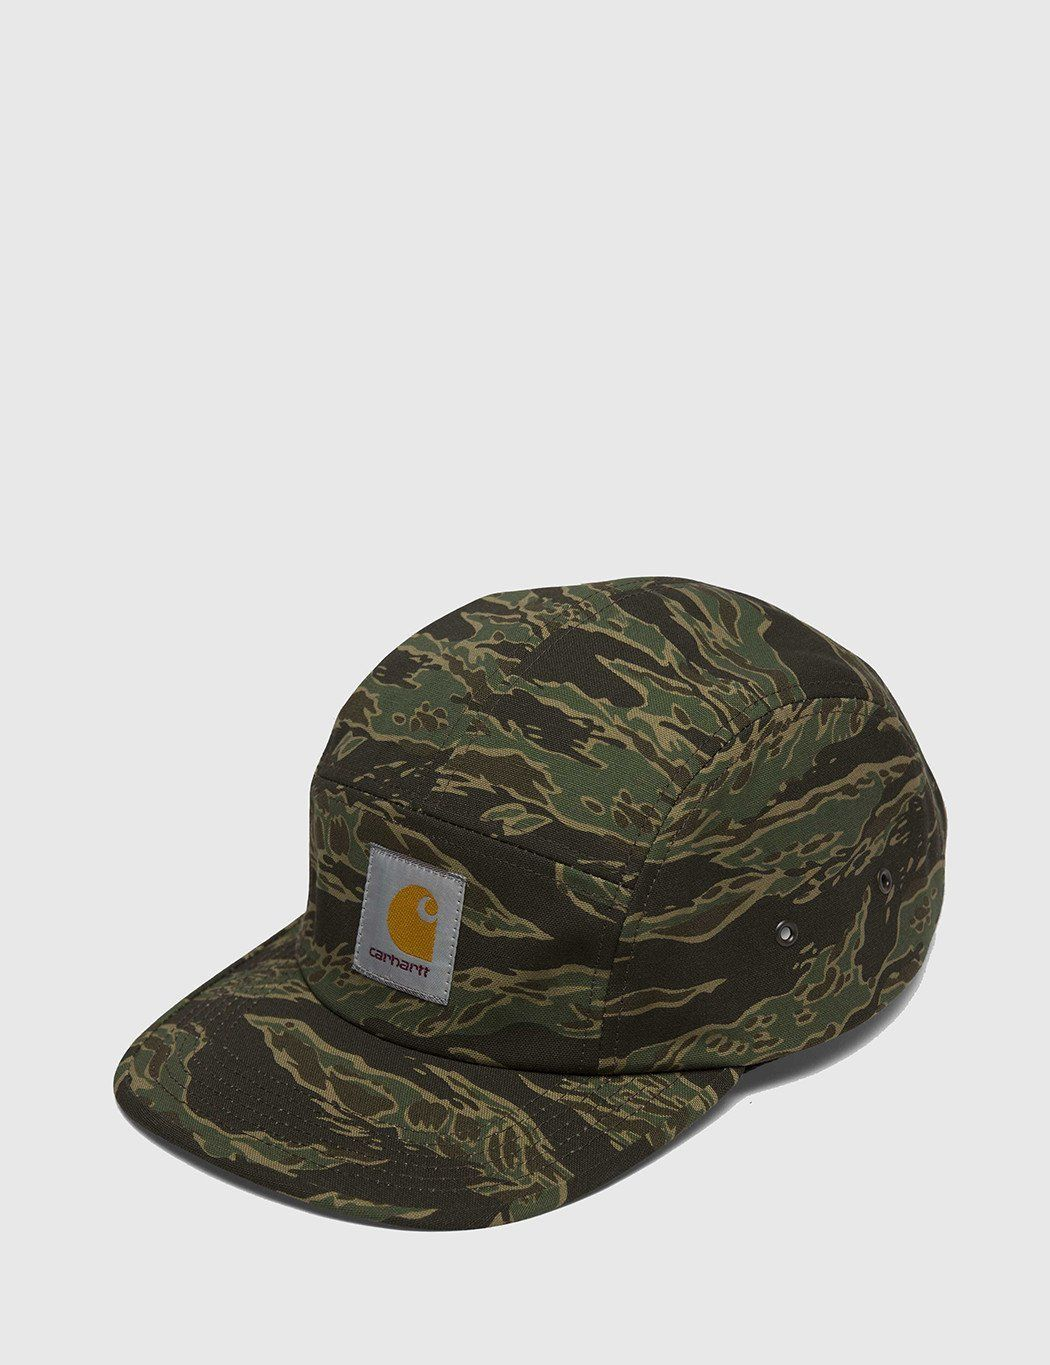 pick up ce123 ad4b3 Carhartt Backley 5-Panel Cap - Tiger Camo   URBAN EXCESS. – URBAN EXCESS USA